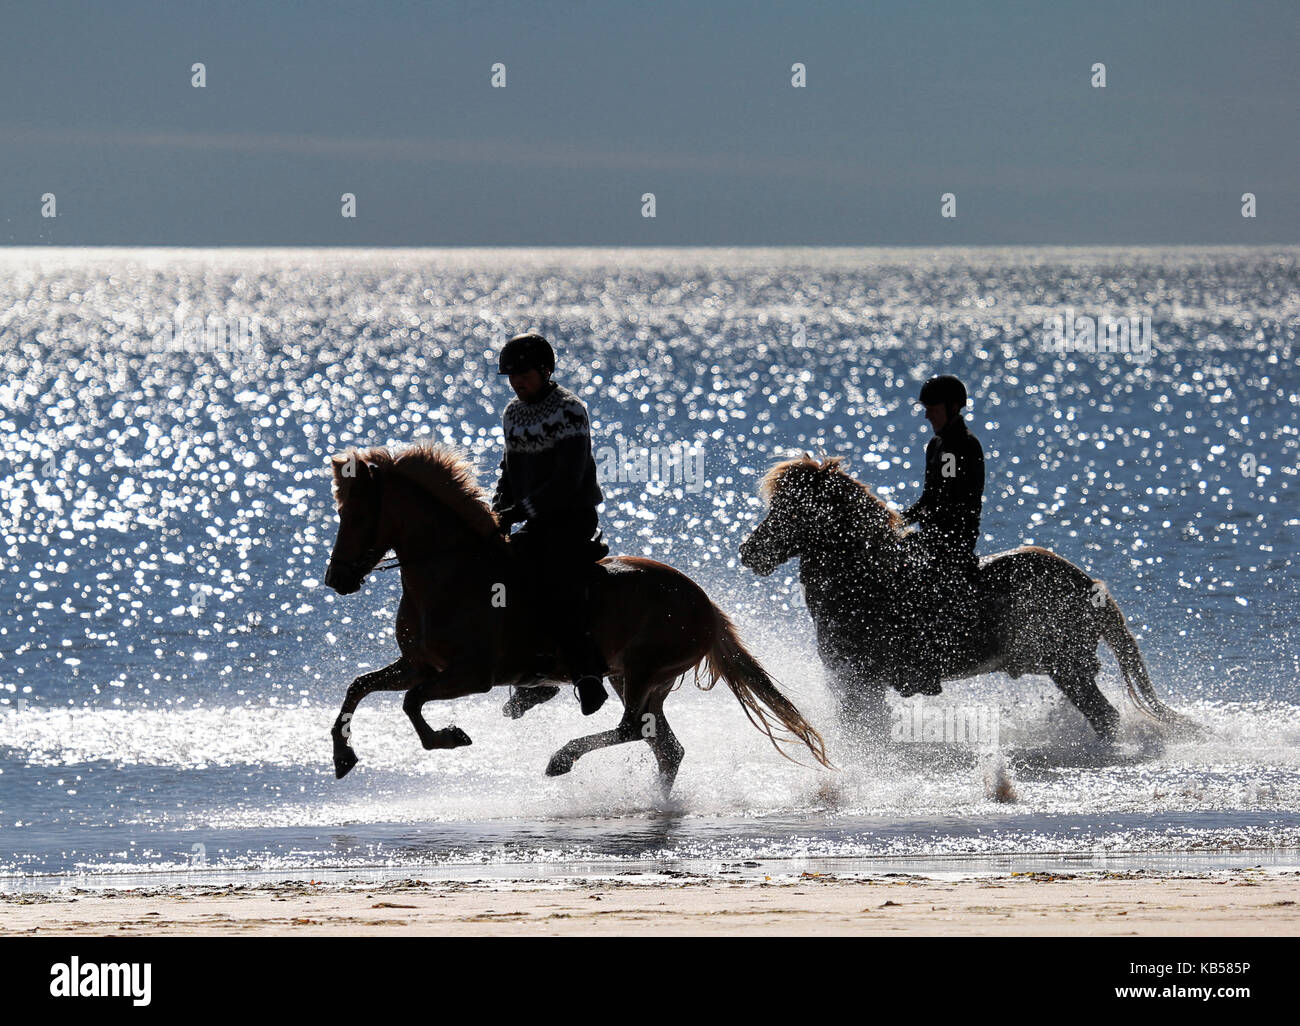 Horseback riding on Longufjorur Beach, Snaefellsnes Peninsula, Iceland - Stock Image